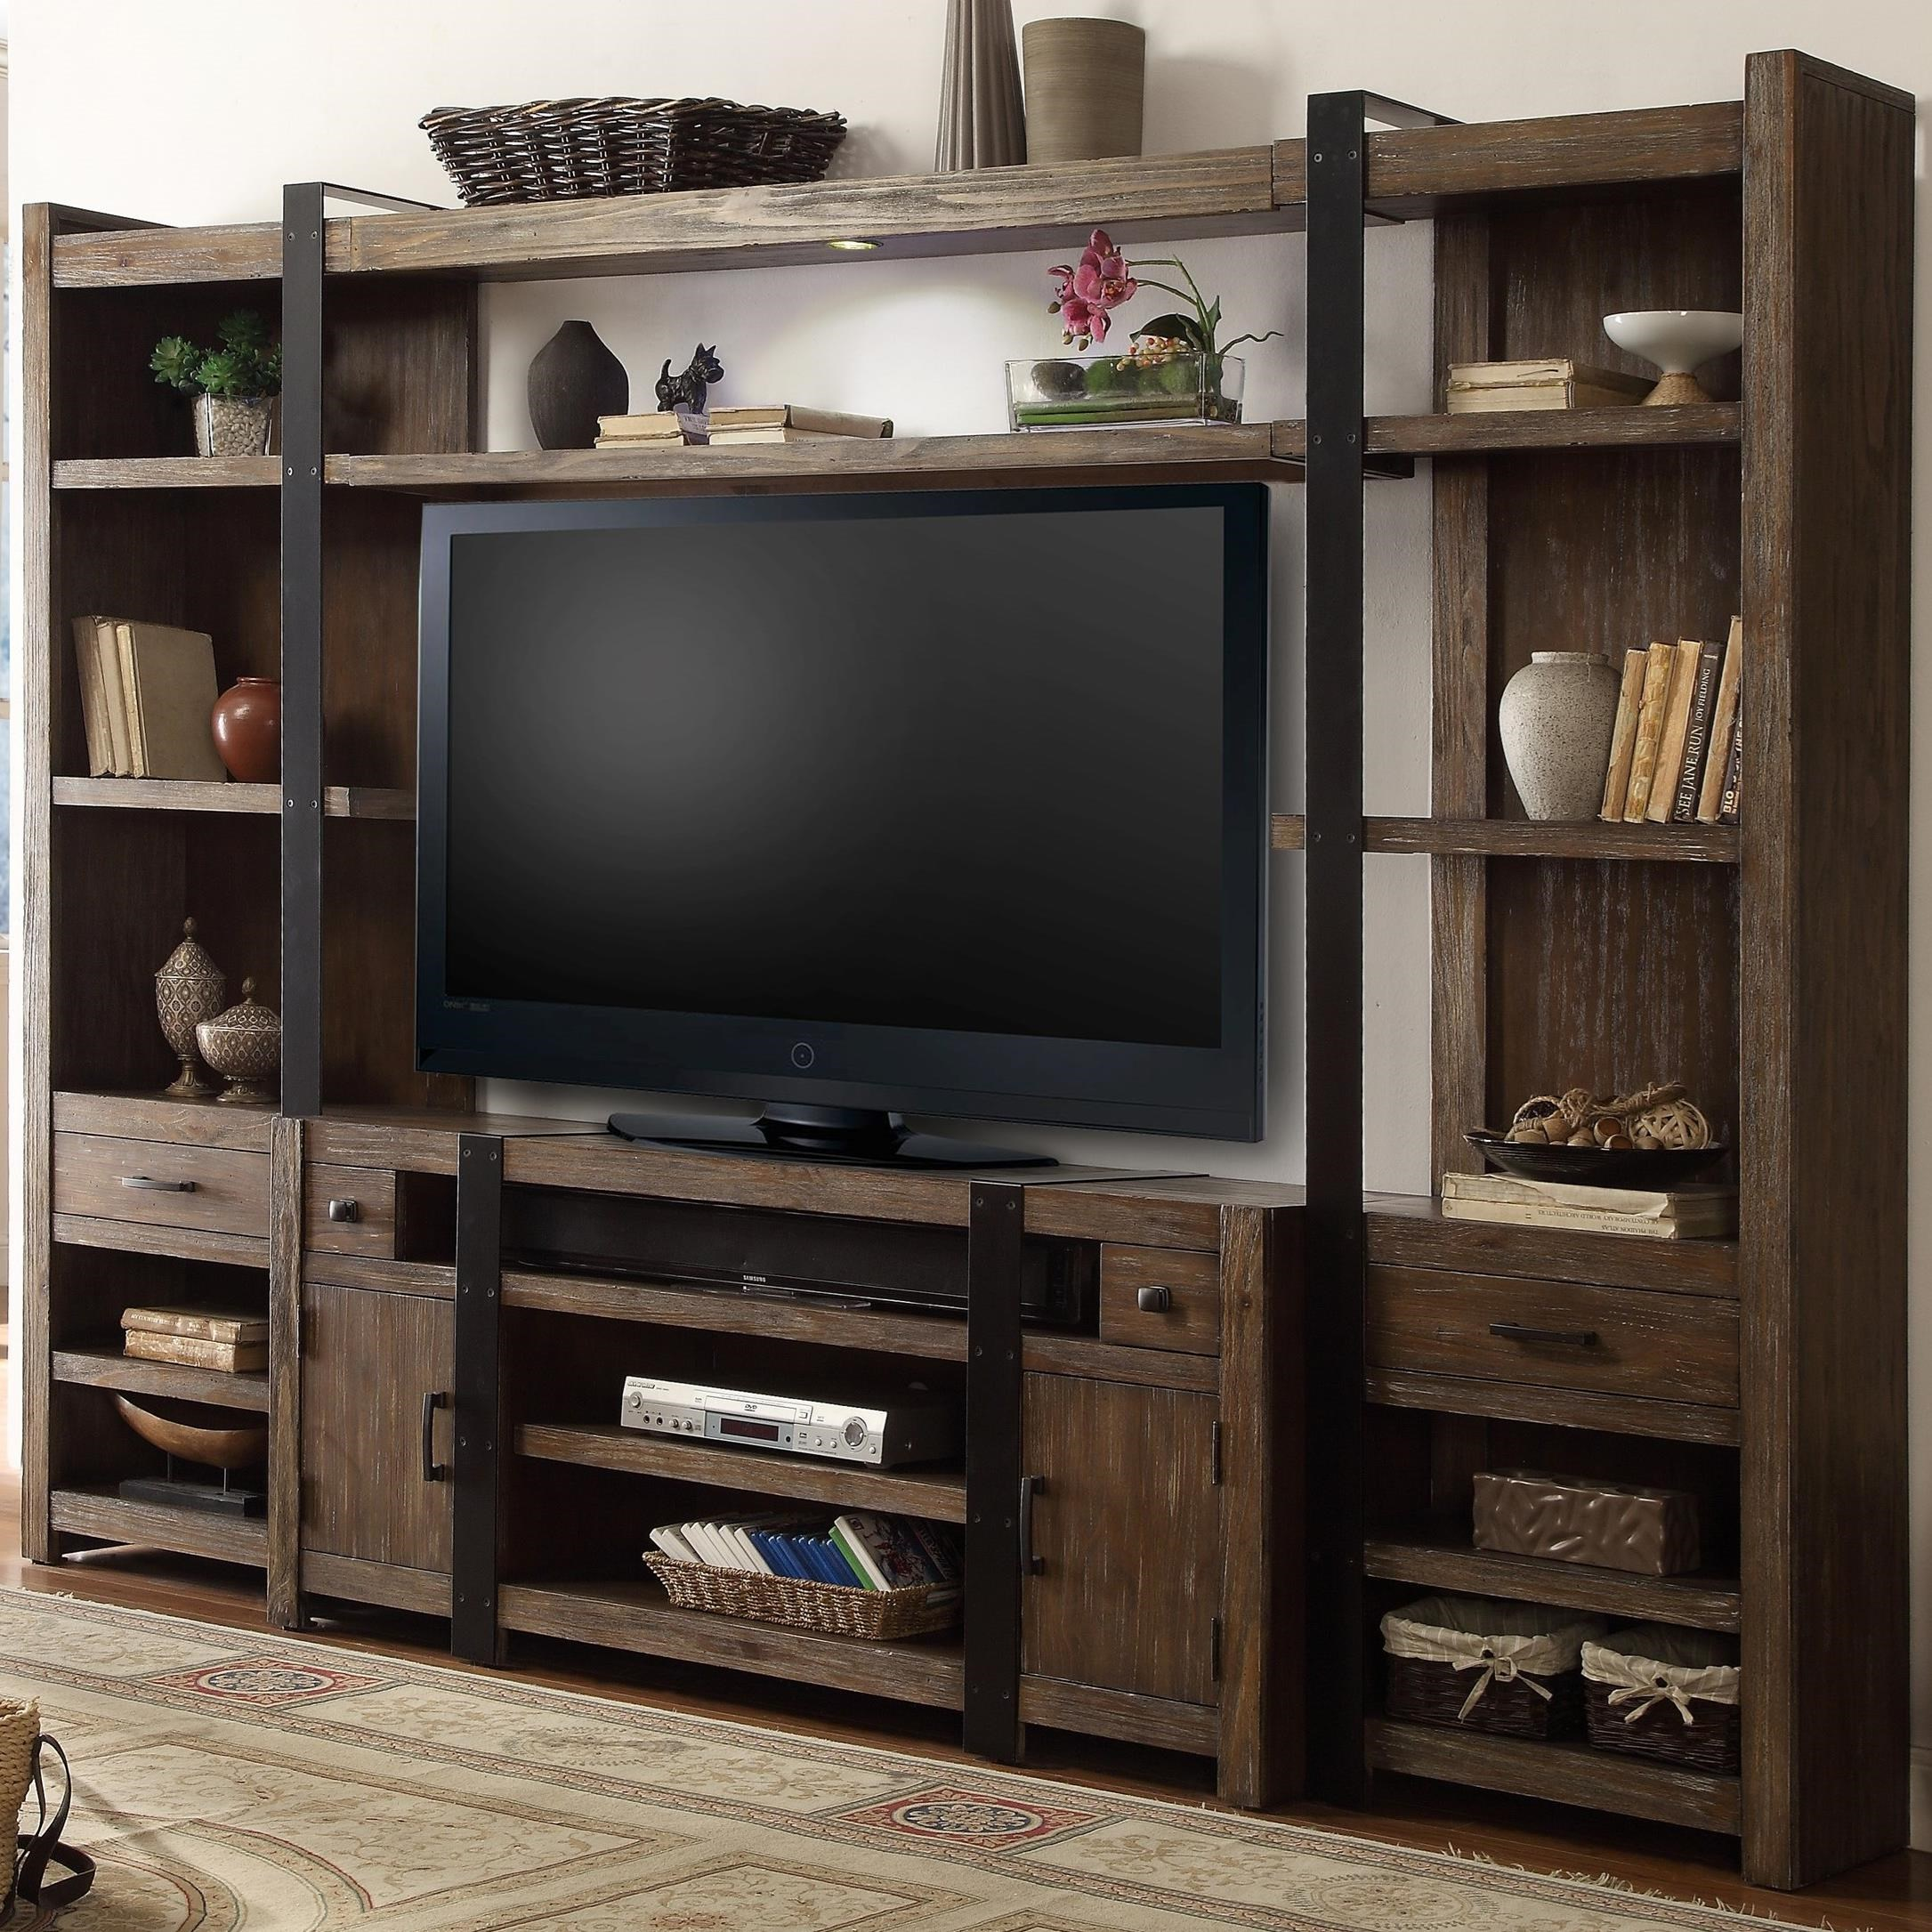 Parker Scott Tulia 4 Piece Entertainment Wall with LED Lighting